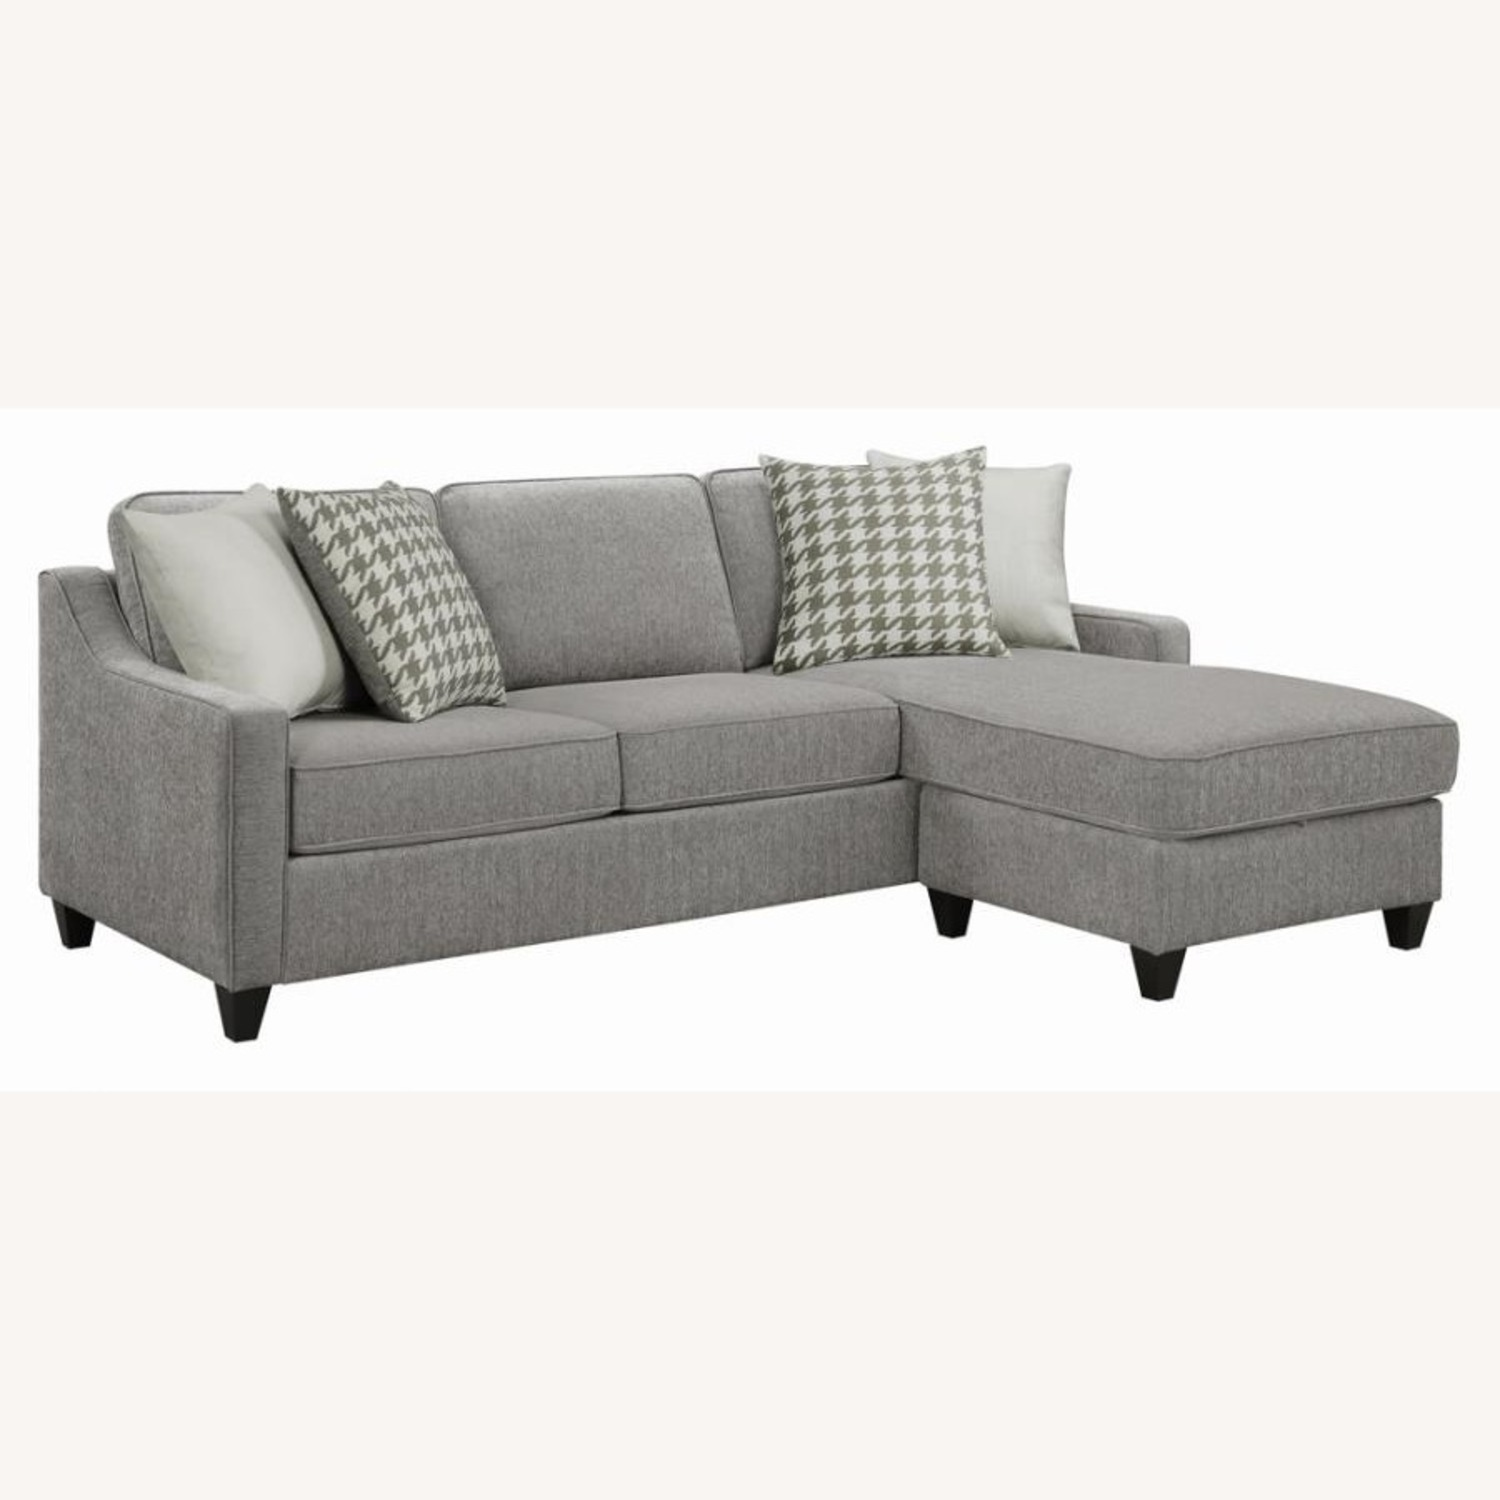 Sectional In Charcoal Chevron Dobby Upholstery - image-0